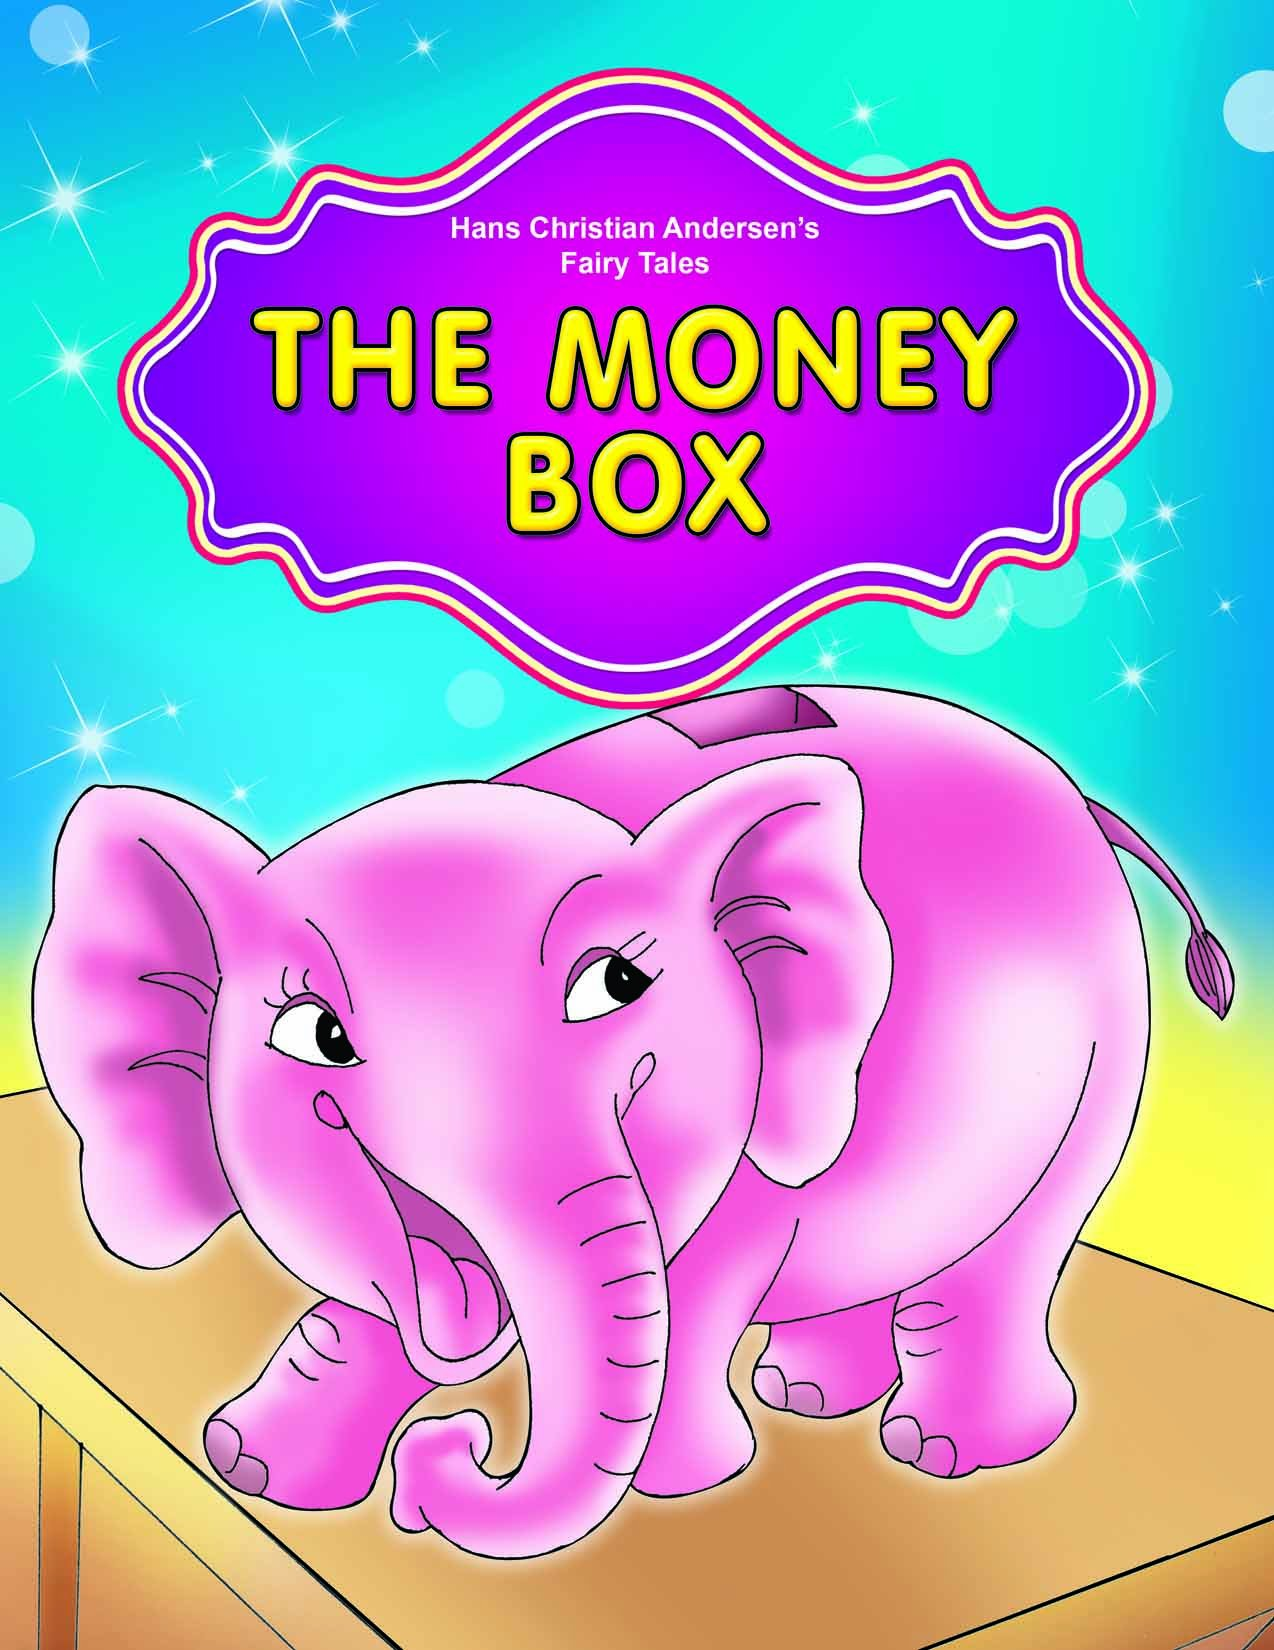 THE MONEY-BOX (HANS CHRISTIAN ANDERSEN'S FAIRY TALES)